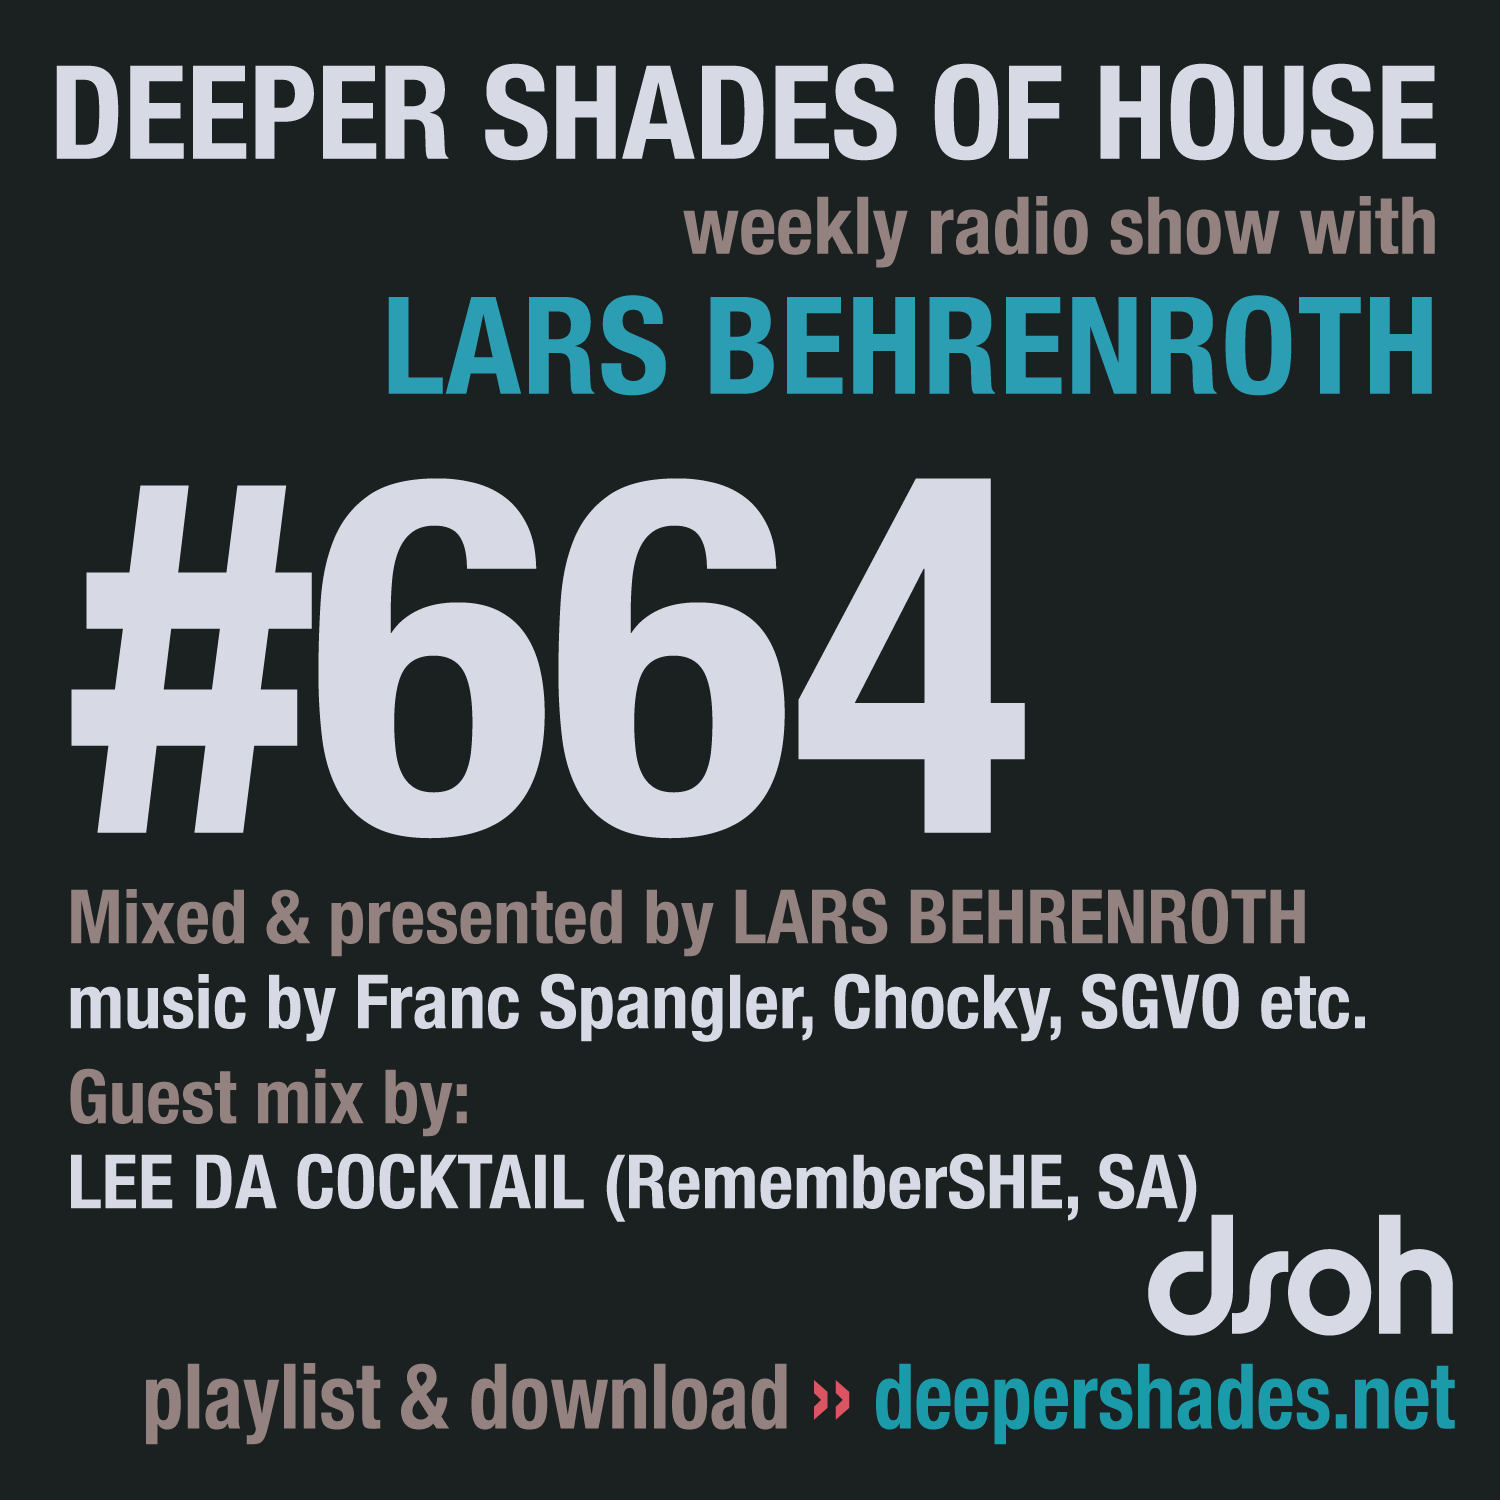 Deeper Shades Of House 664